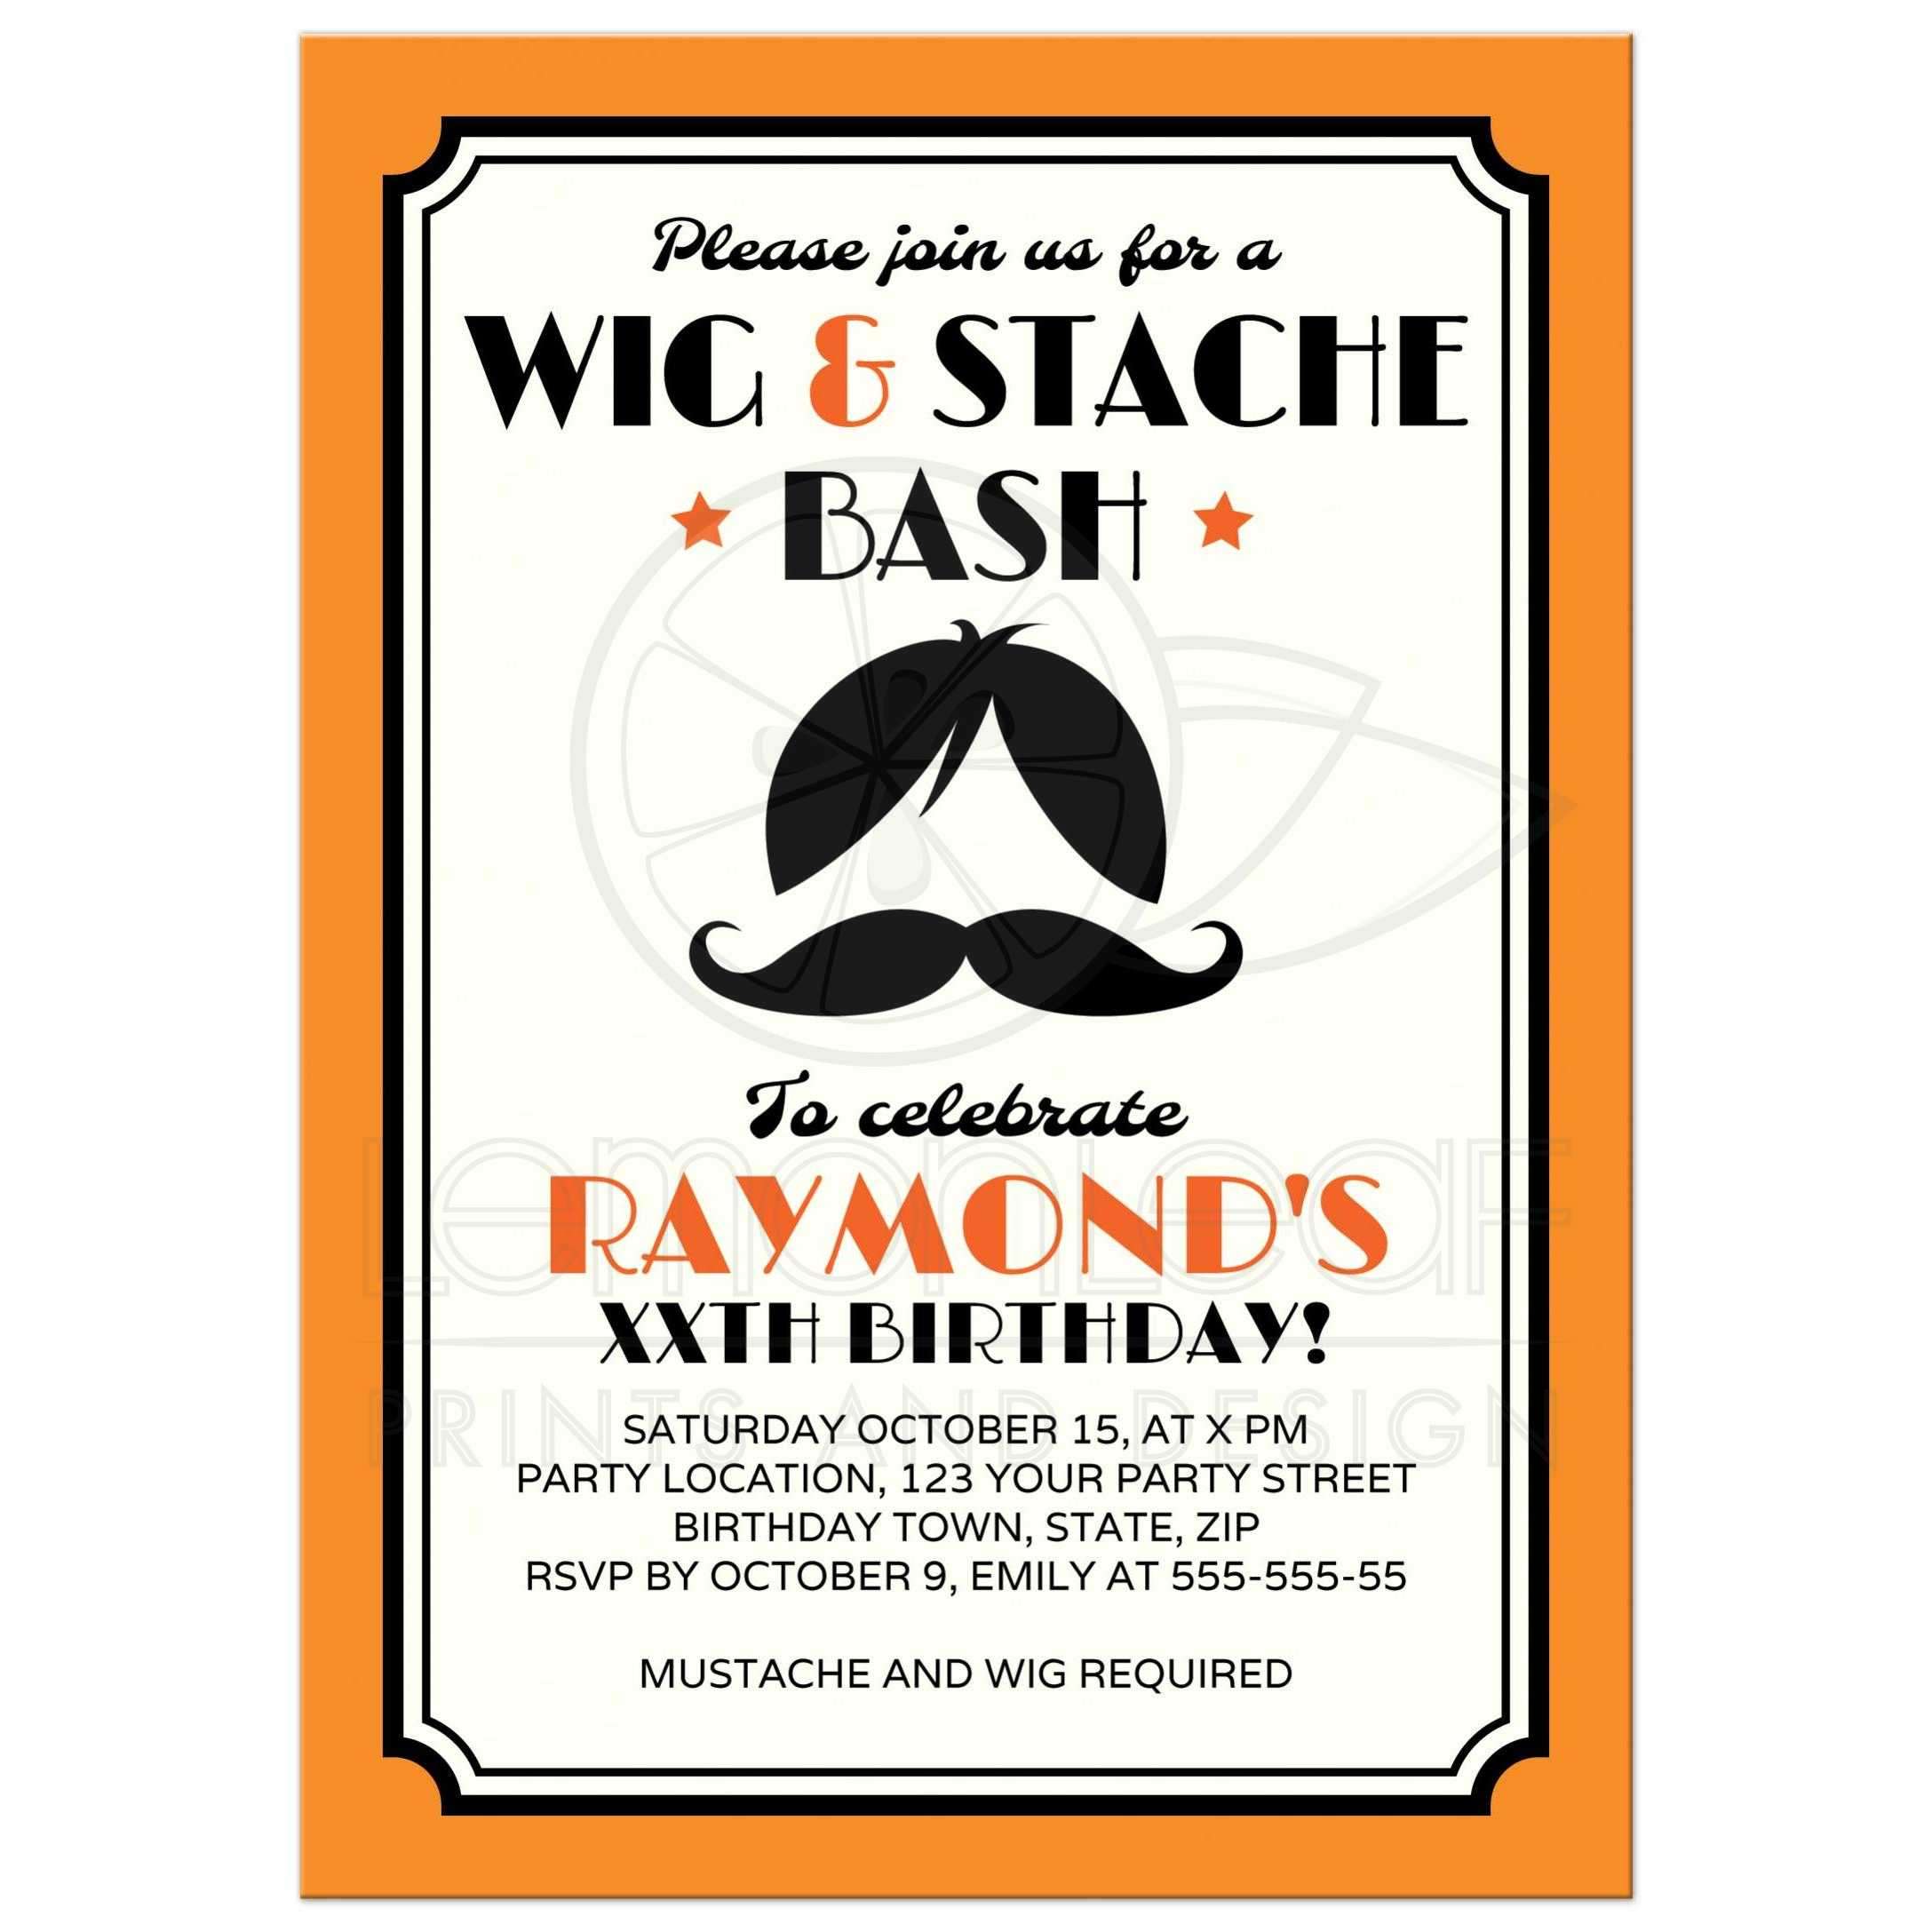 Funny Hipster Wig And Mustache Bash Birthday Party Invitation